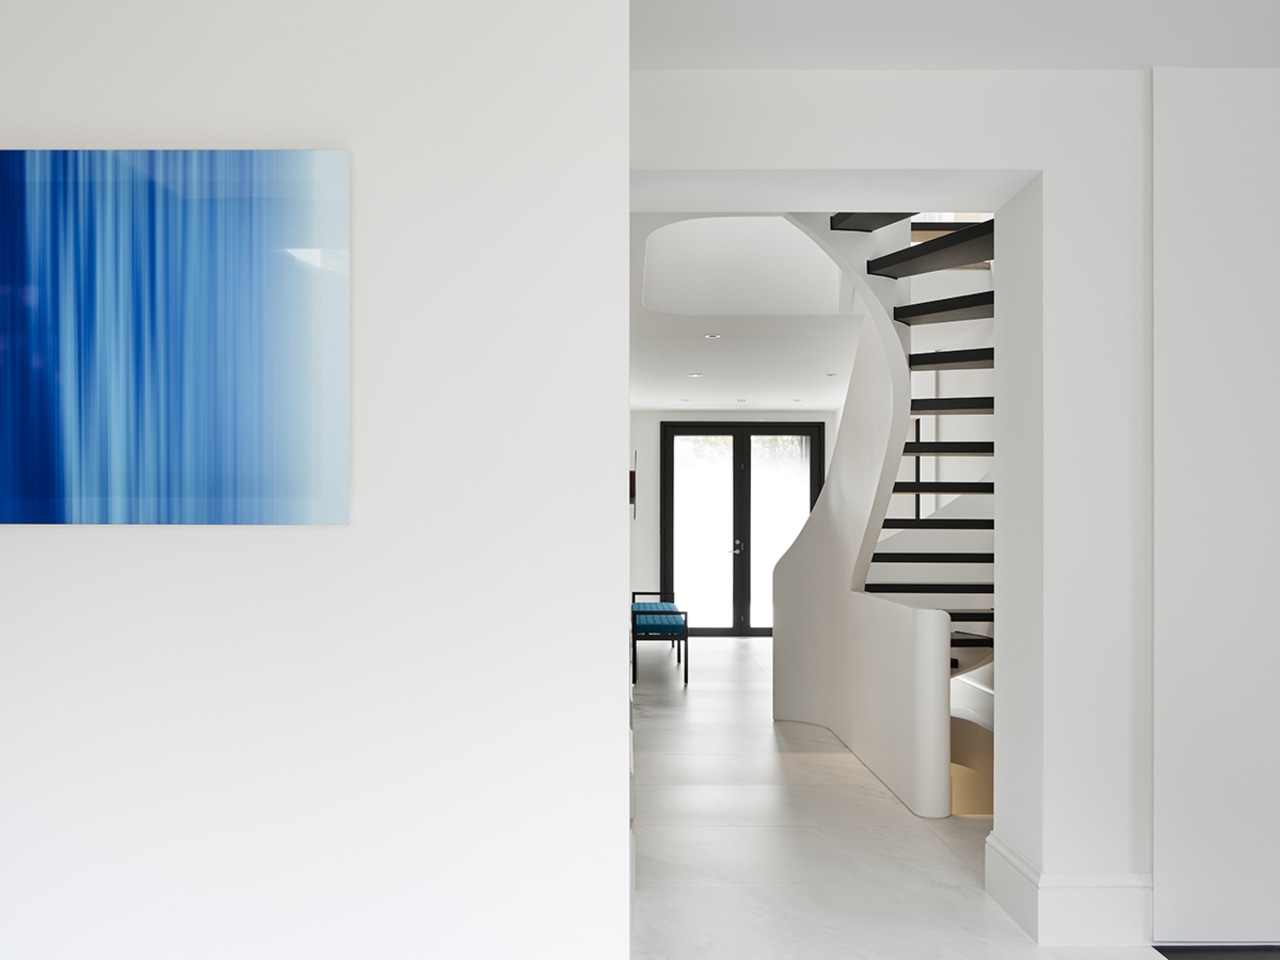 Foremost among the interior architectural changes is the white